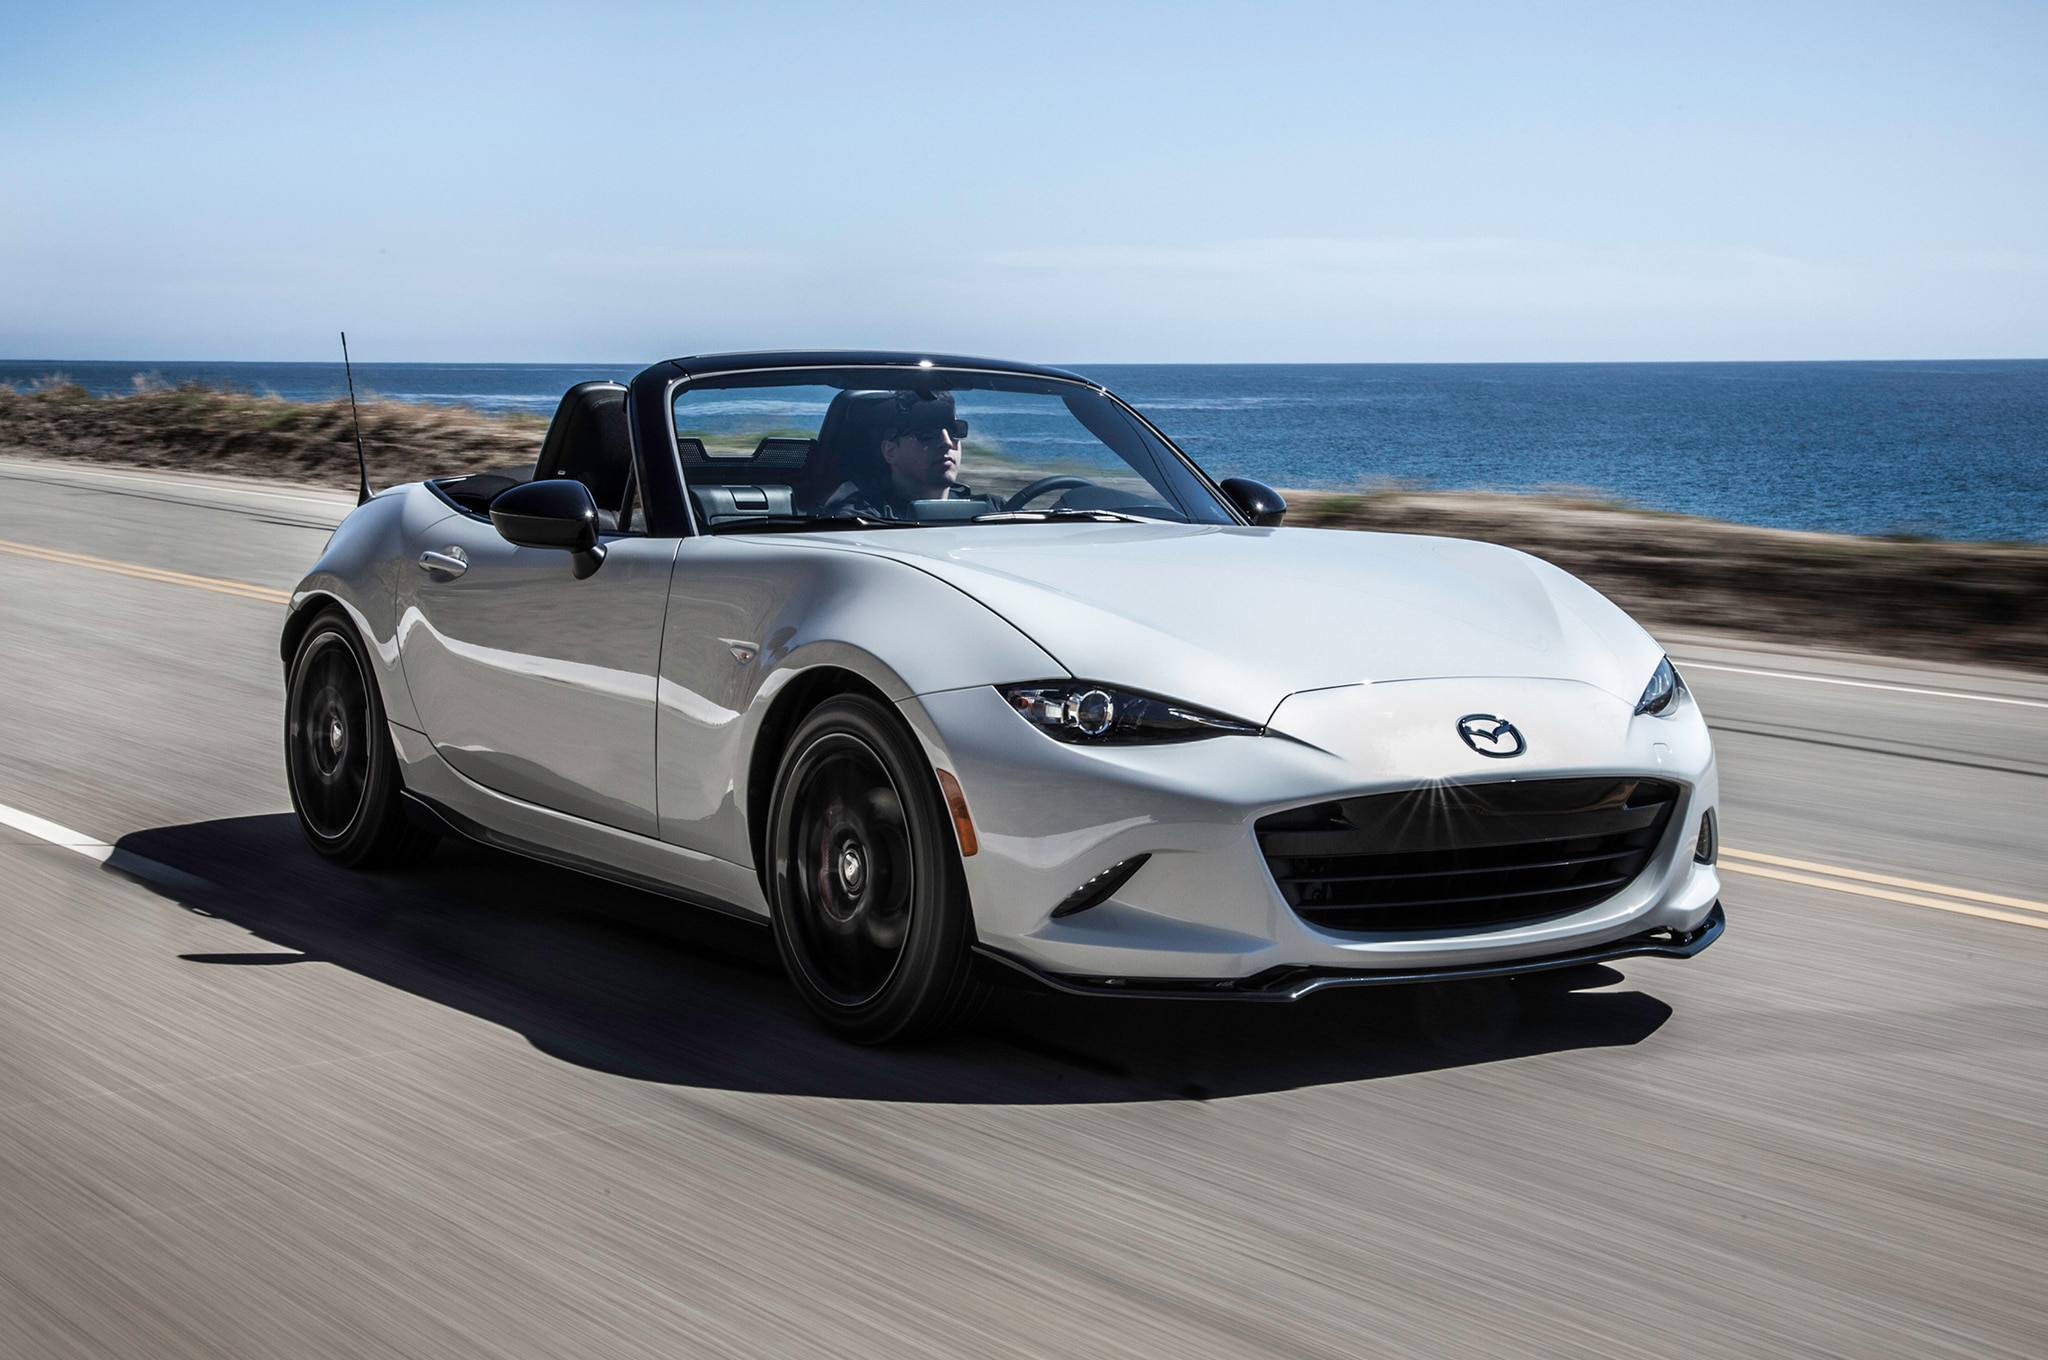 http://st.automobilemag.com/uploads/sites/11/2015/03/2016-Mazda-MX-5-Club-front-three-quarter-in-motion.jpg